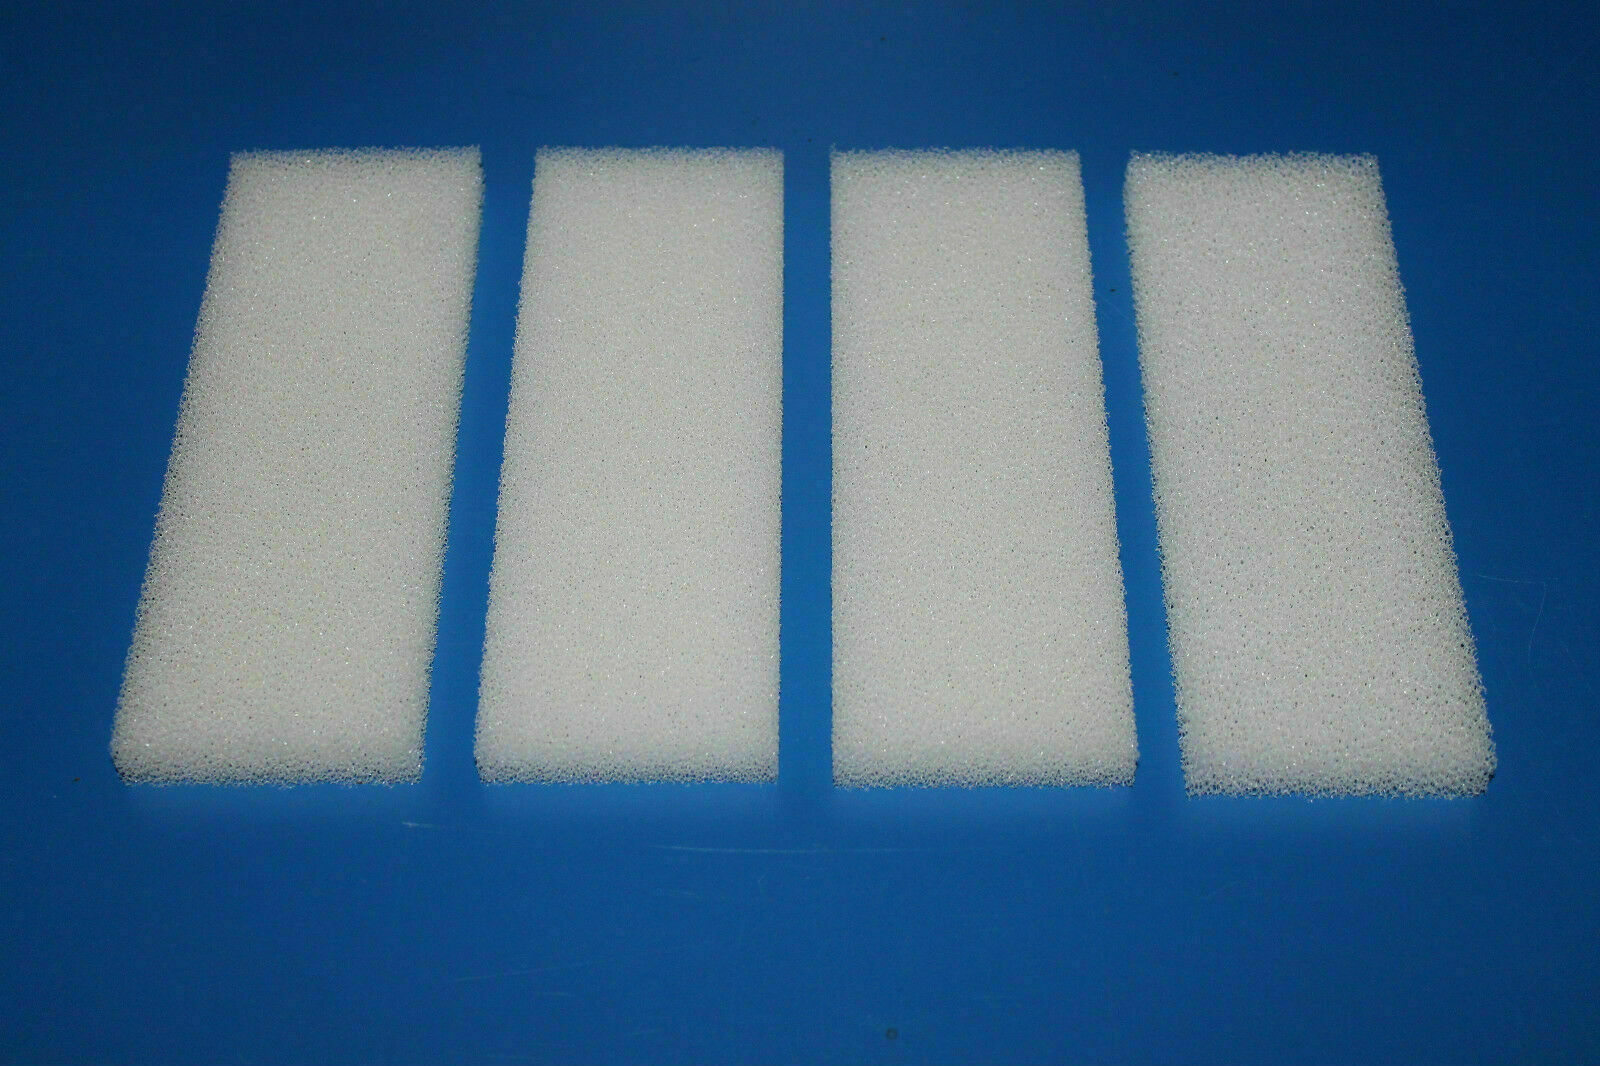 4 x COMPATIBLE INTERPET PF4 FOAM SPONGE REPLACEMENTS POWER FILTER FISH TANK